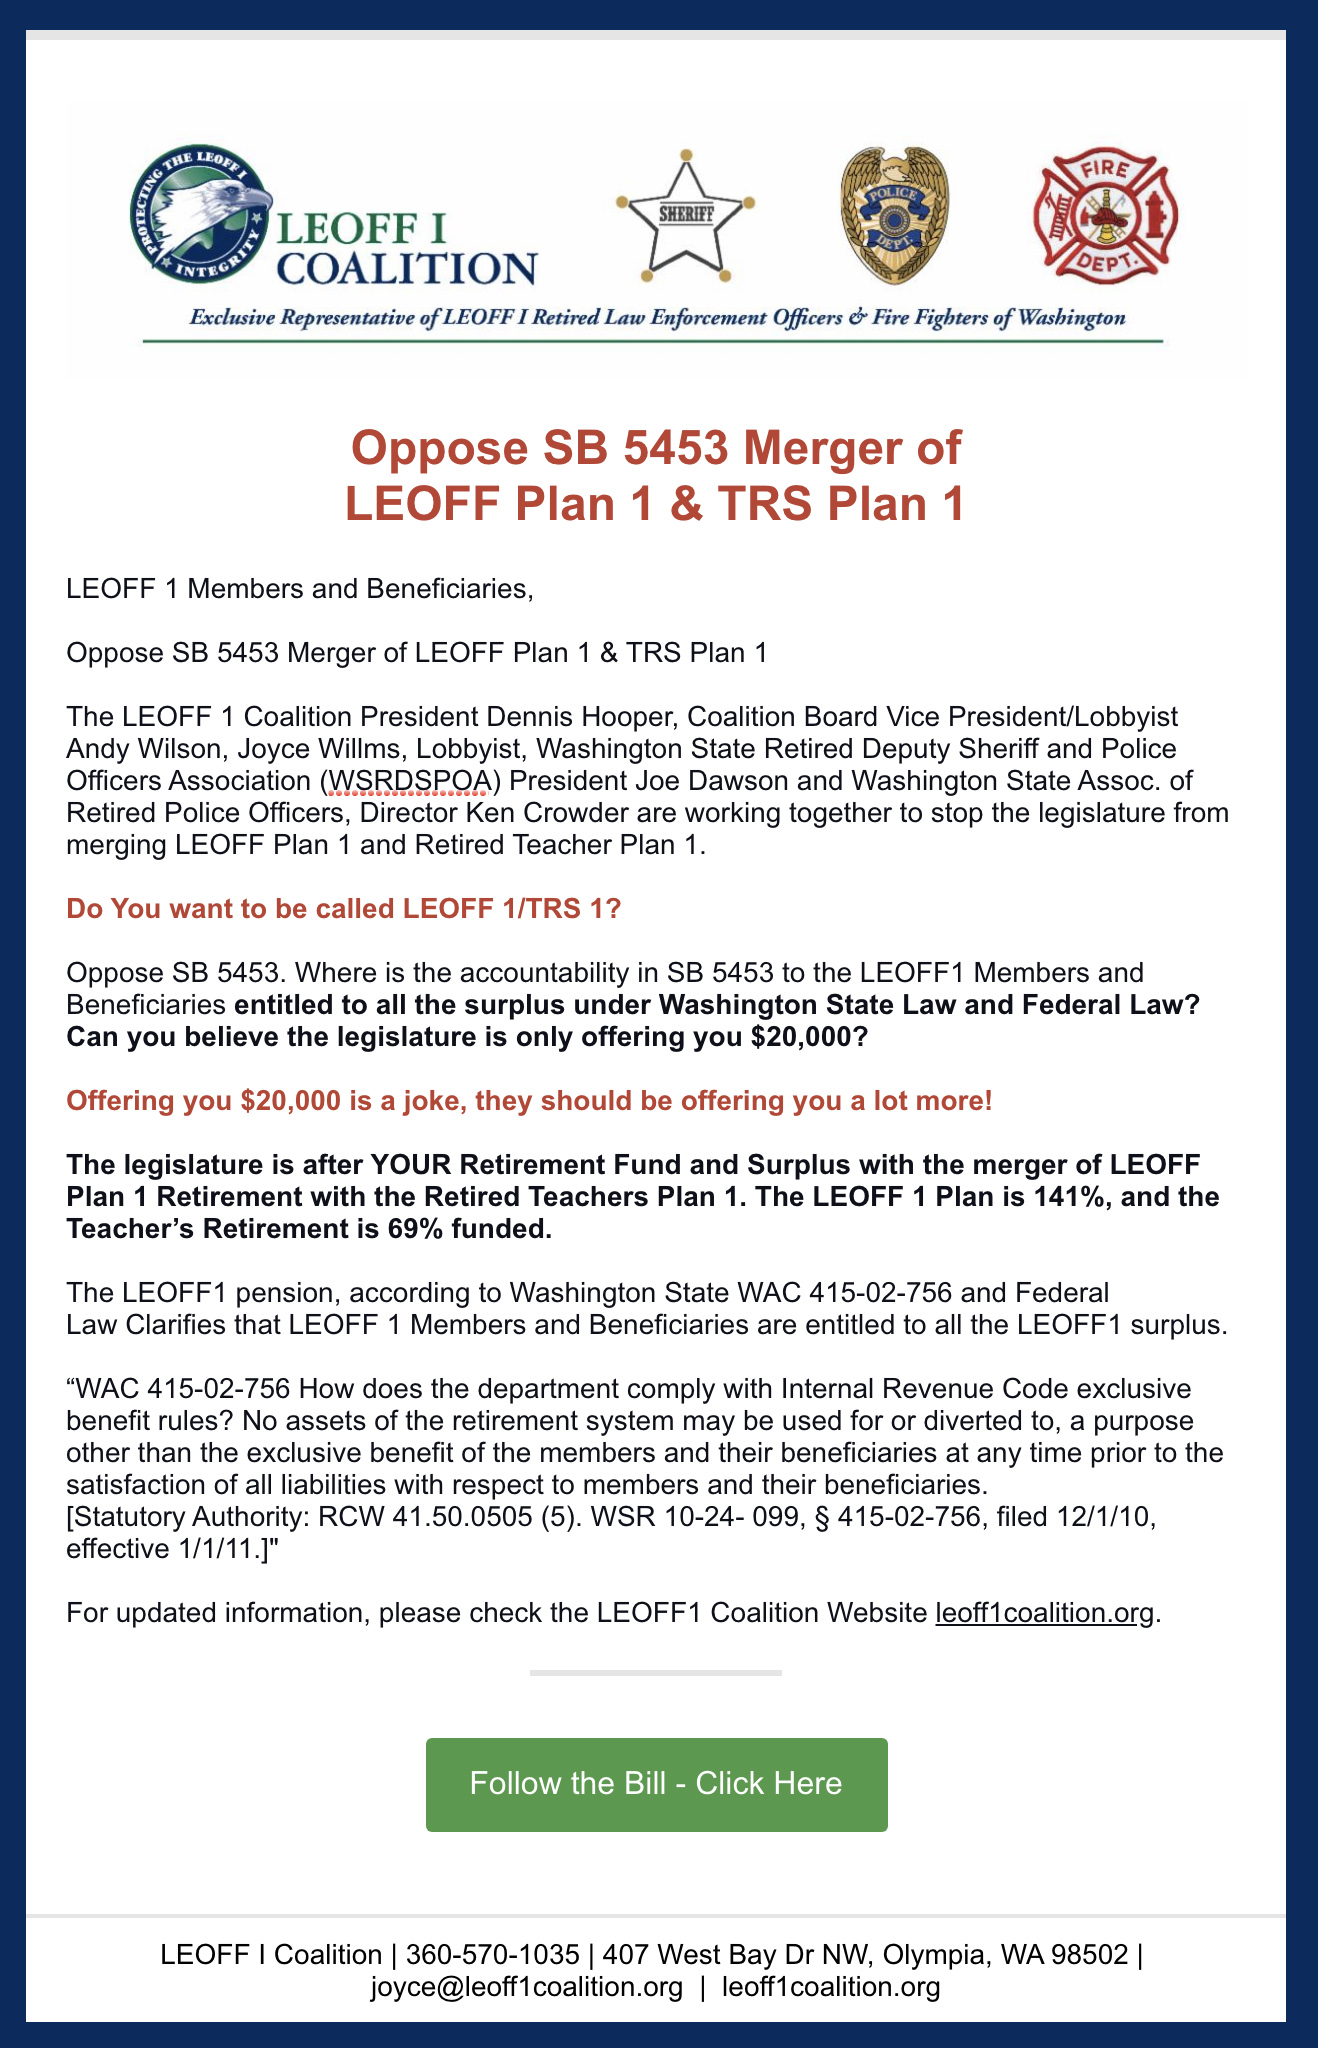 Code Nw 1 1000 : LEOFF, Coalition,, Enforcement, Officers, Fighters,, Washington,